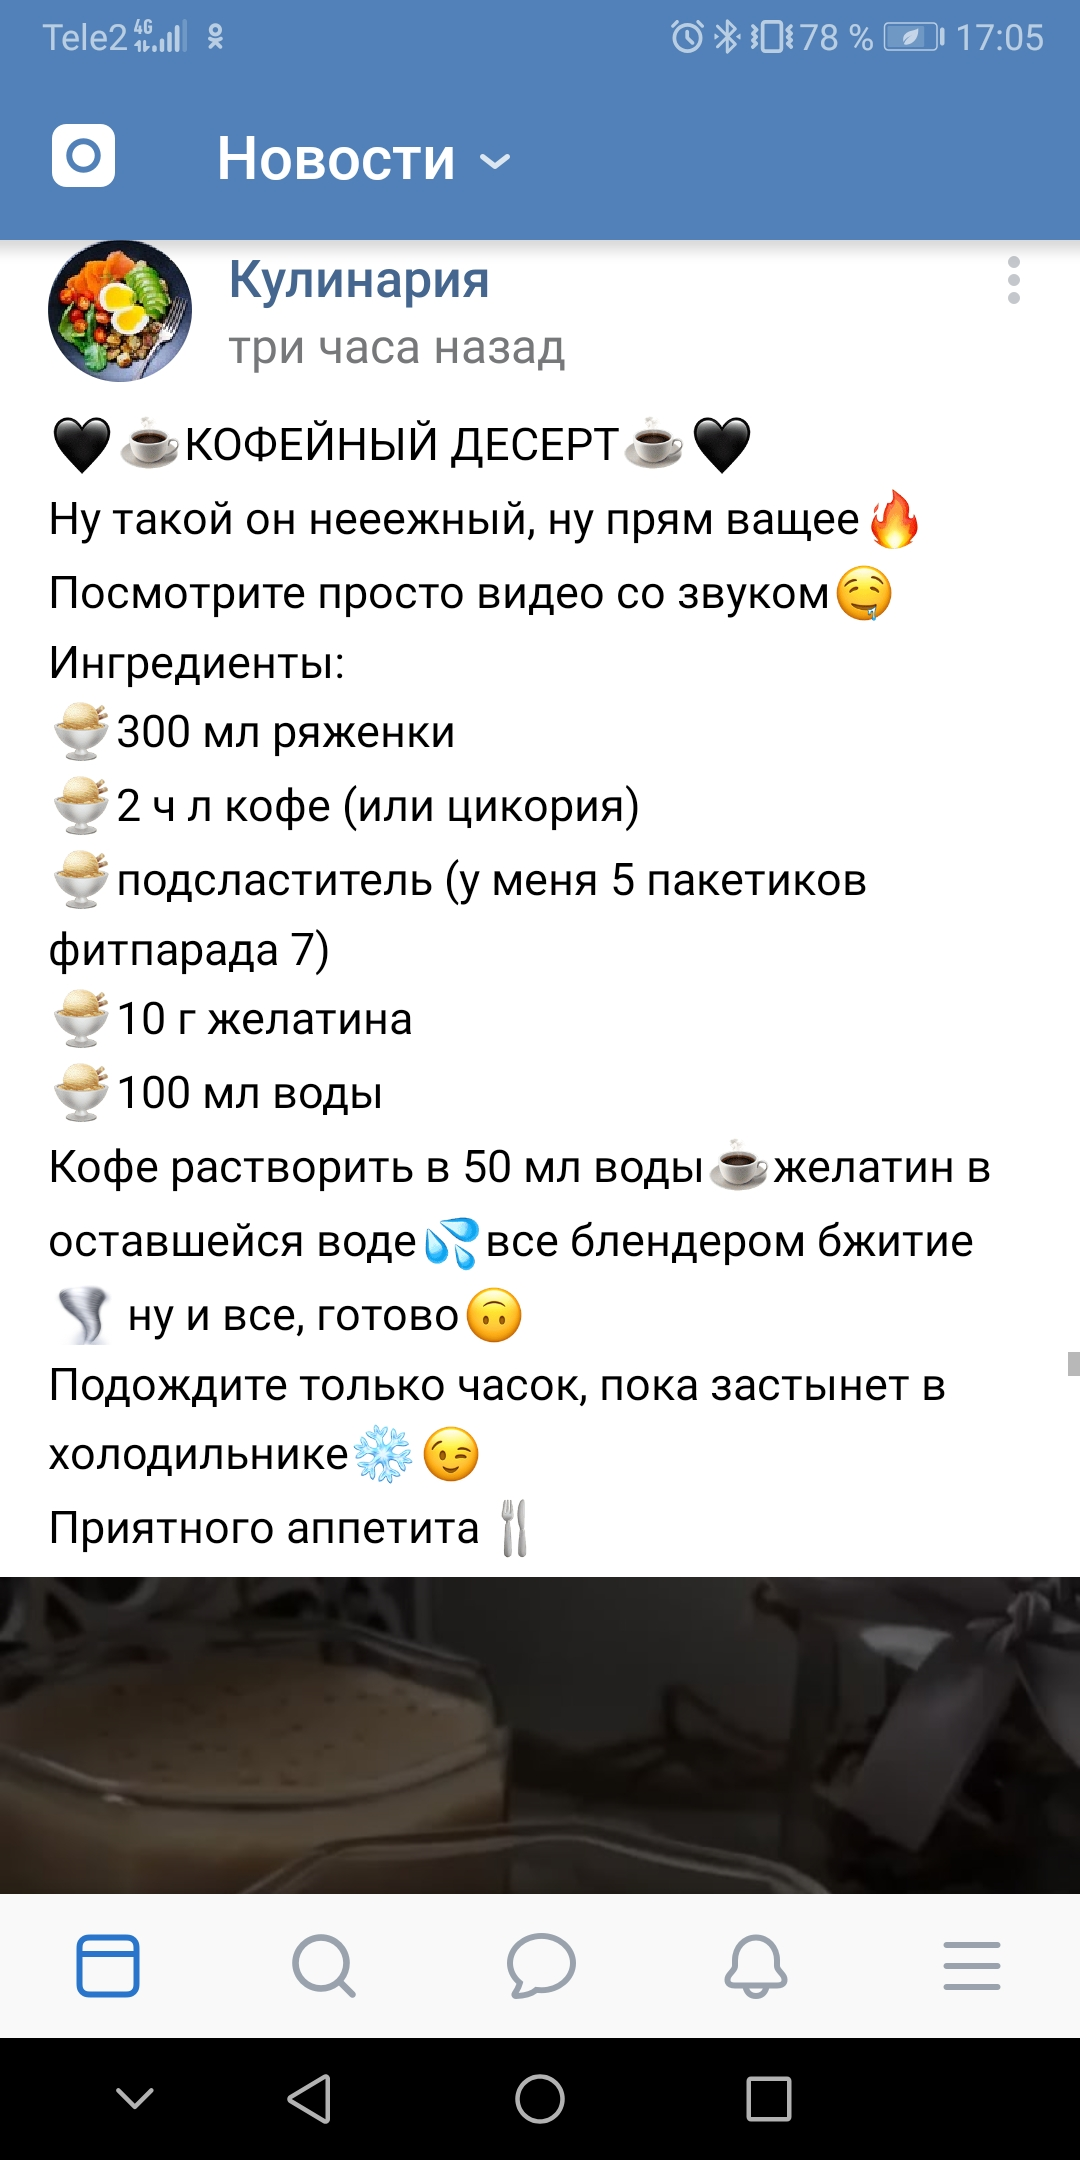 Screenshot_20191020_170524_com.vkontakte.android.jpg